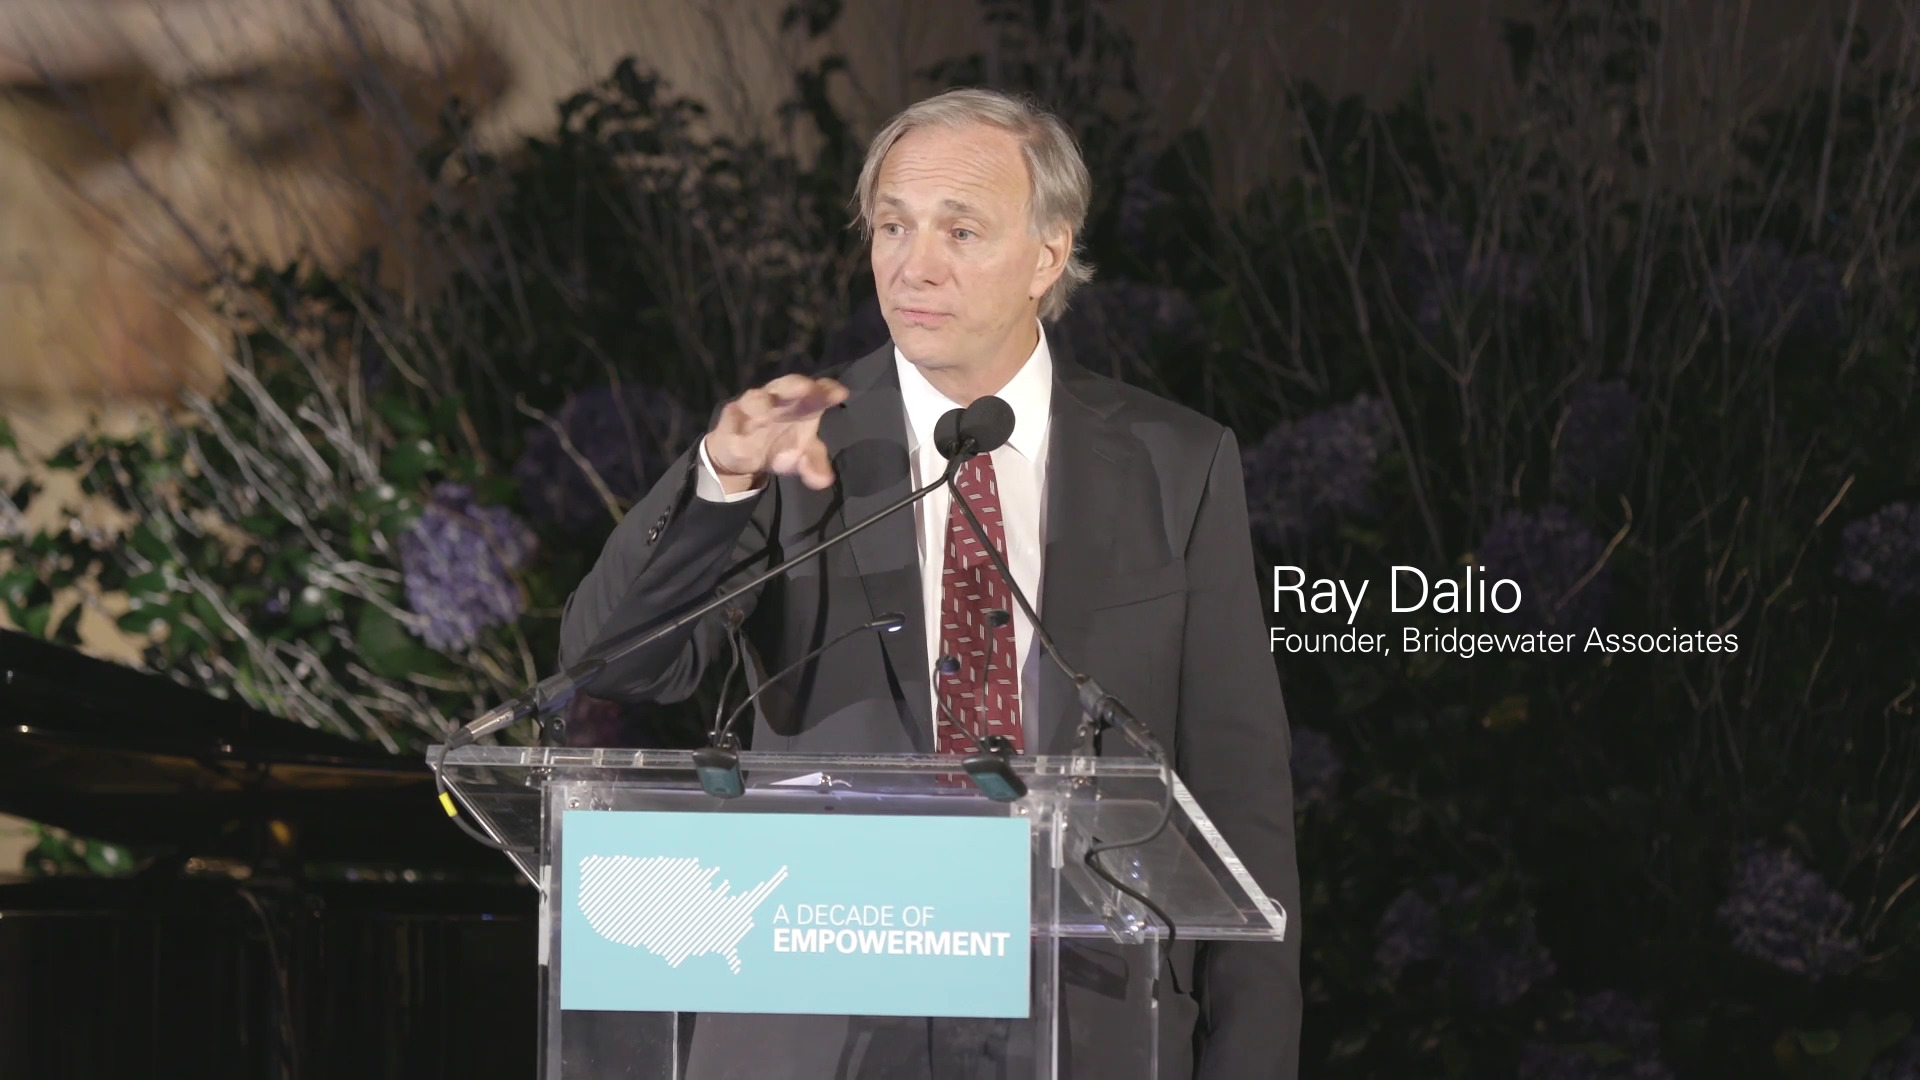 The 69-year old son of father (?) and mother(?) Ray Dalio in 2018 photo. Ray Dalio earned a  million dollar salary - leaving the net worth at 14000 million in 2018